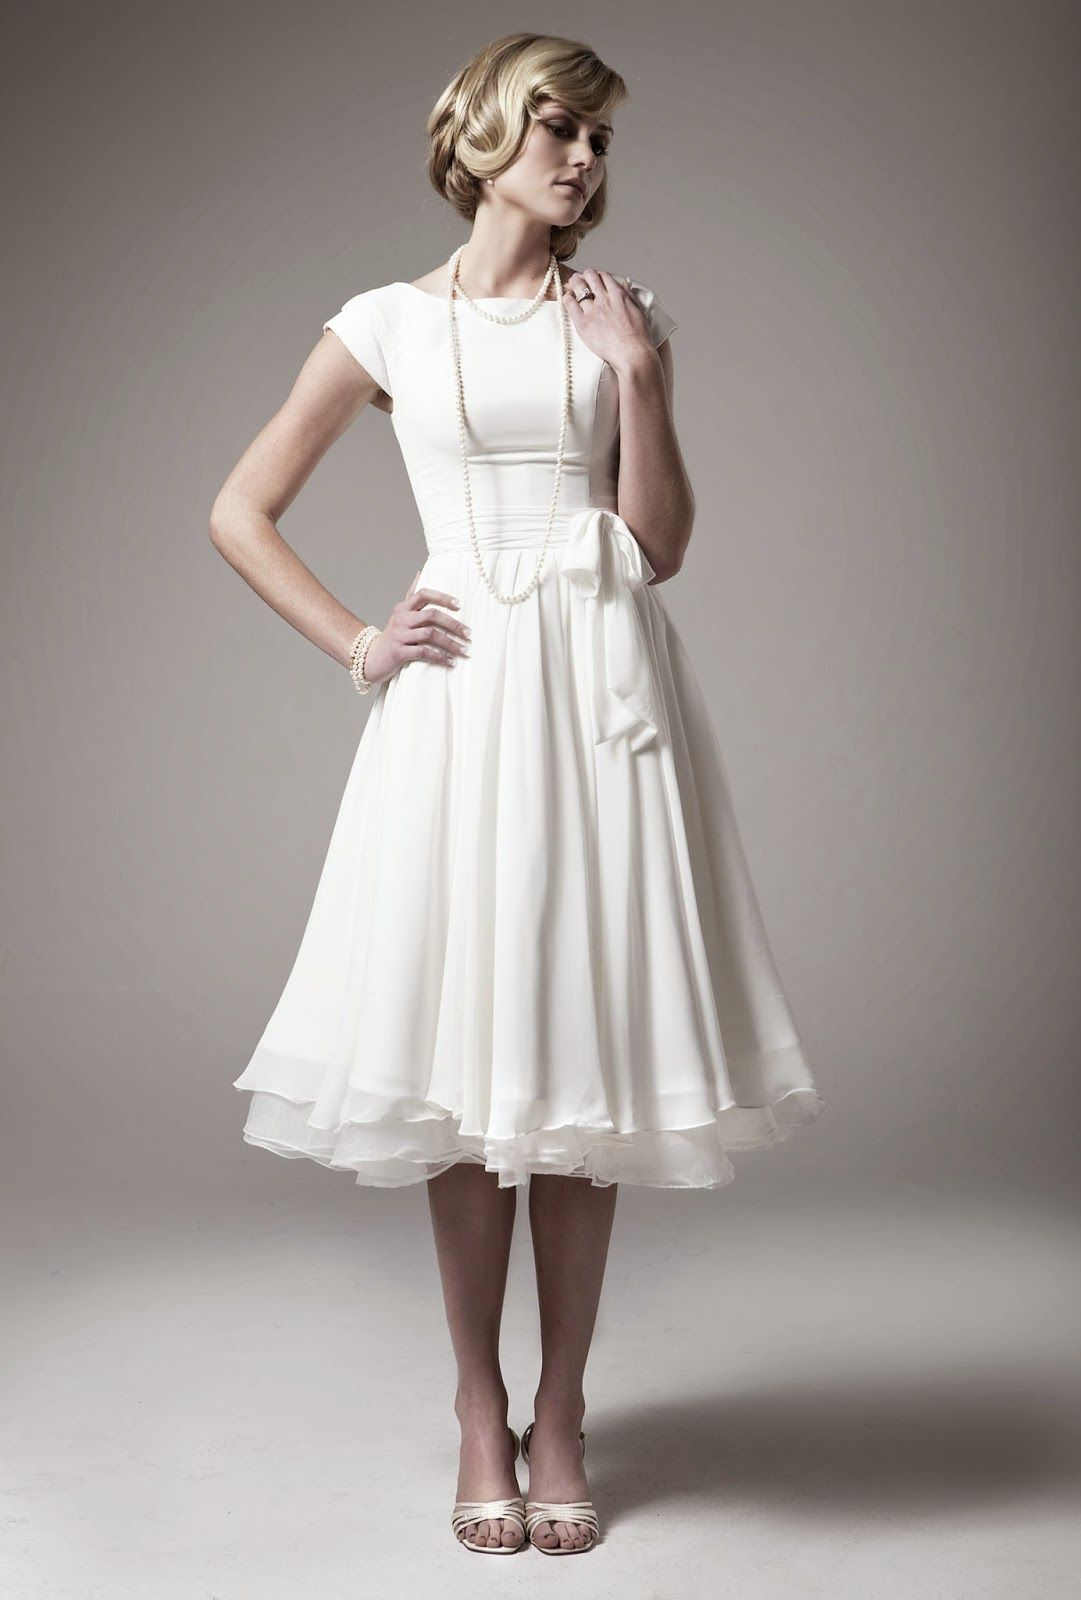 Casual wedding dresses nd marriage wedding concepts ideas ideas